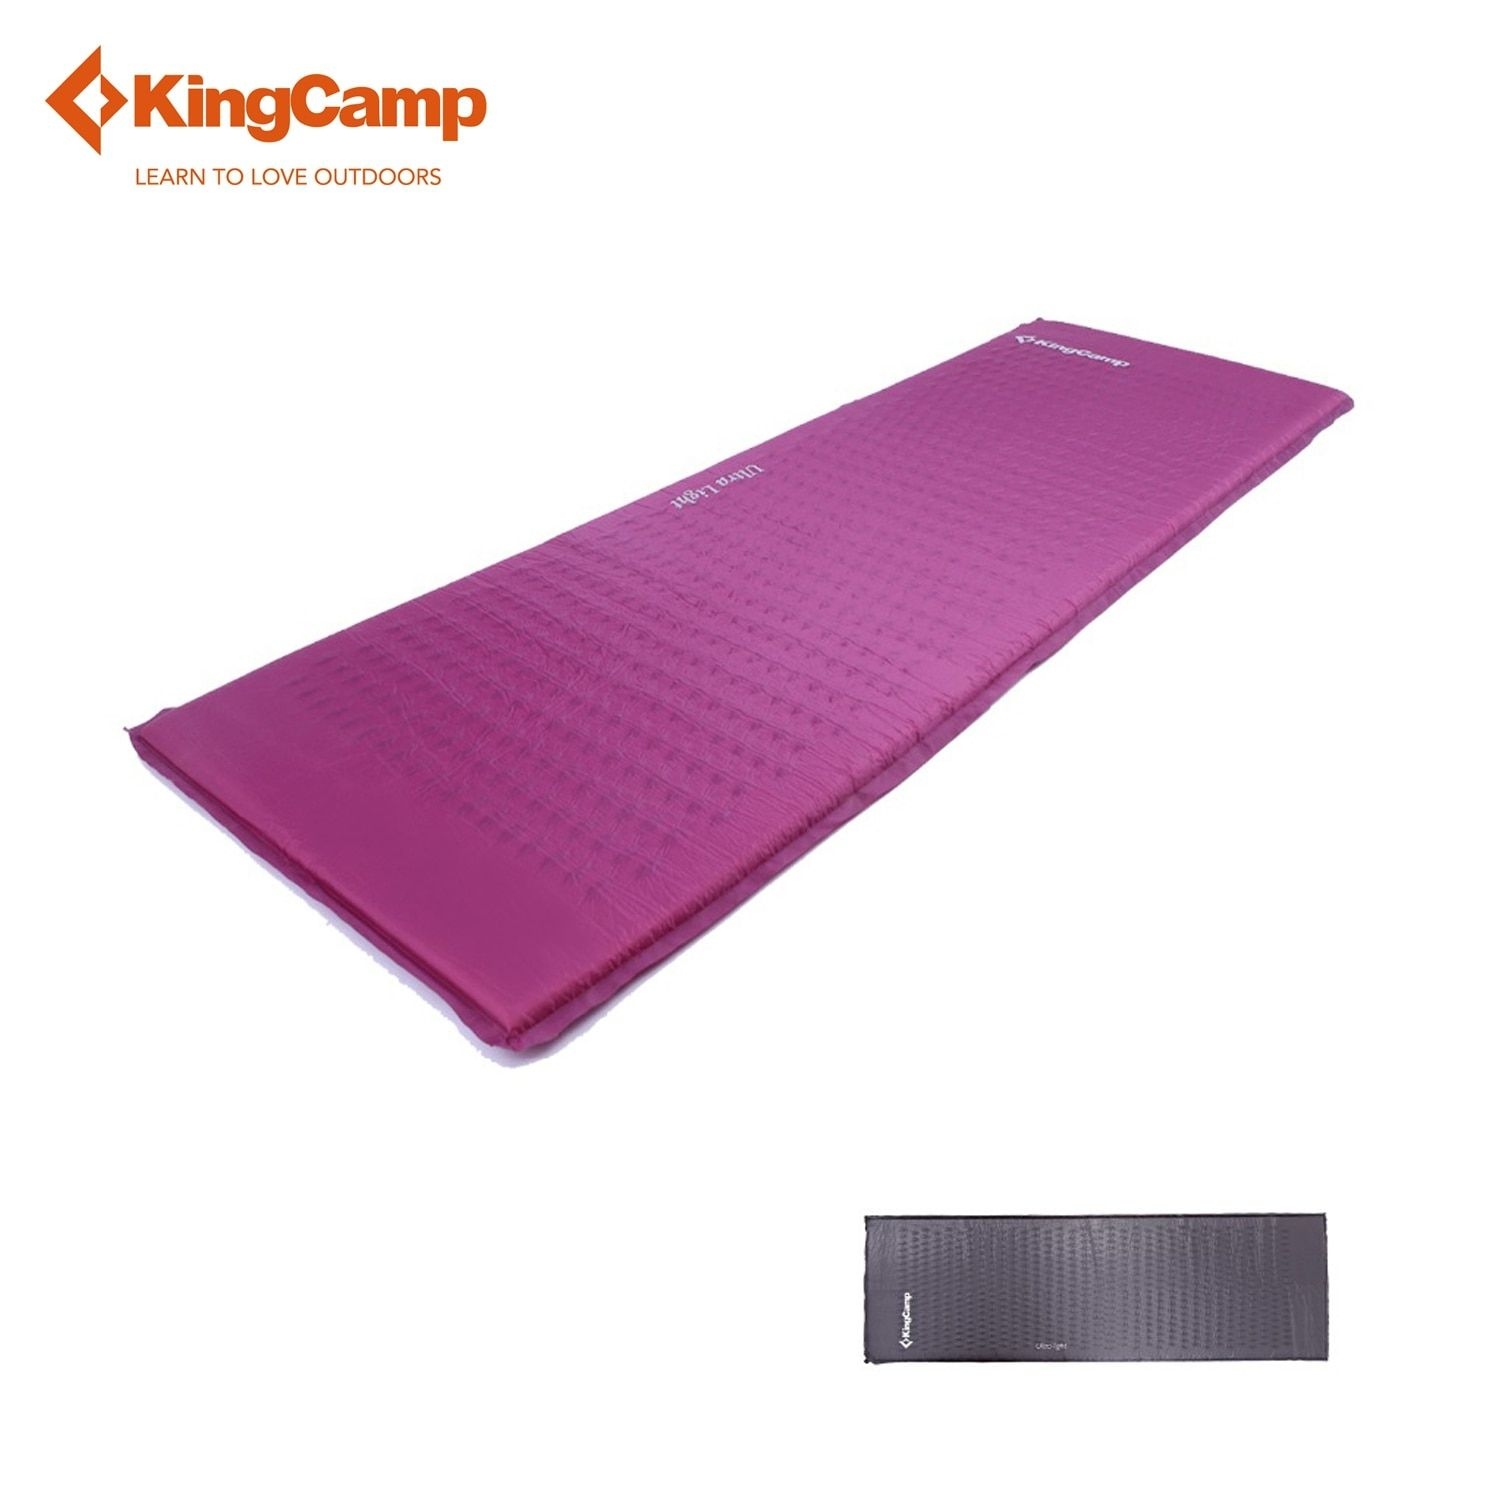 KingCamp Ultralight eco-friendly Self-Inflating Camp Pad for Camping Backpacking Hiking